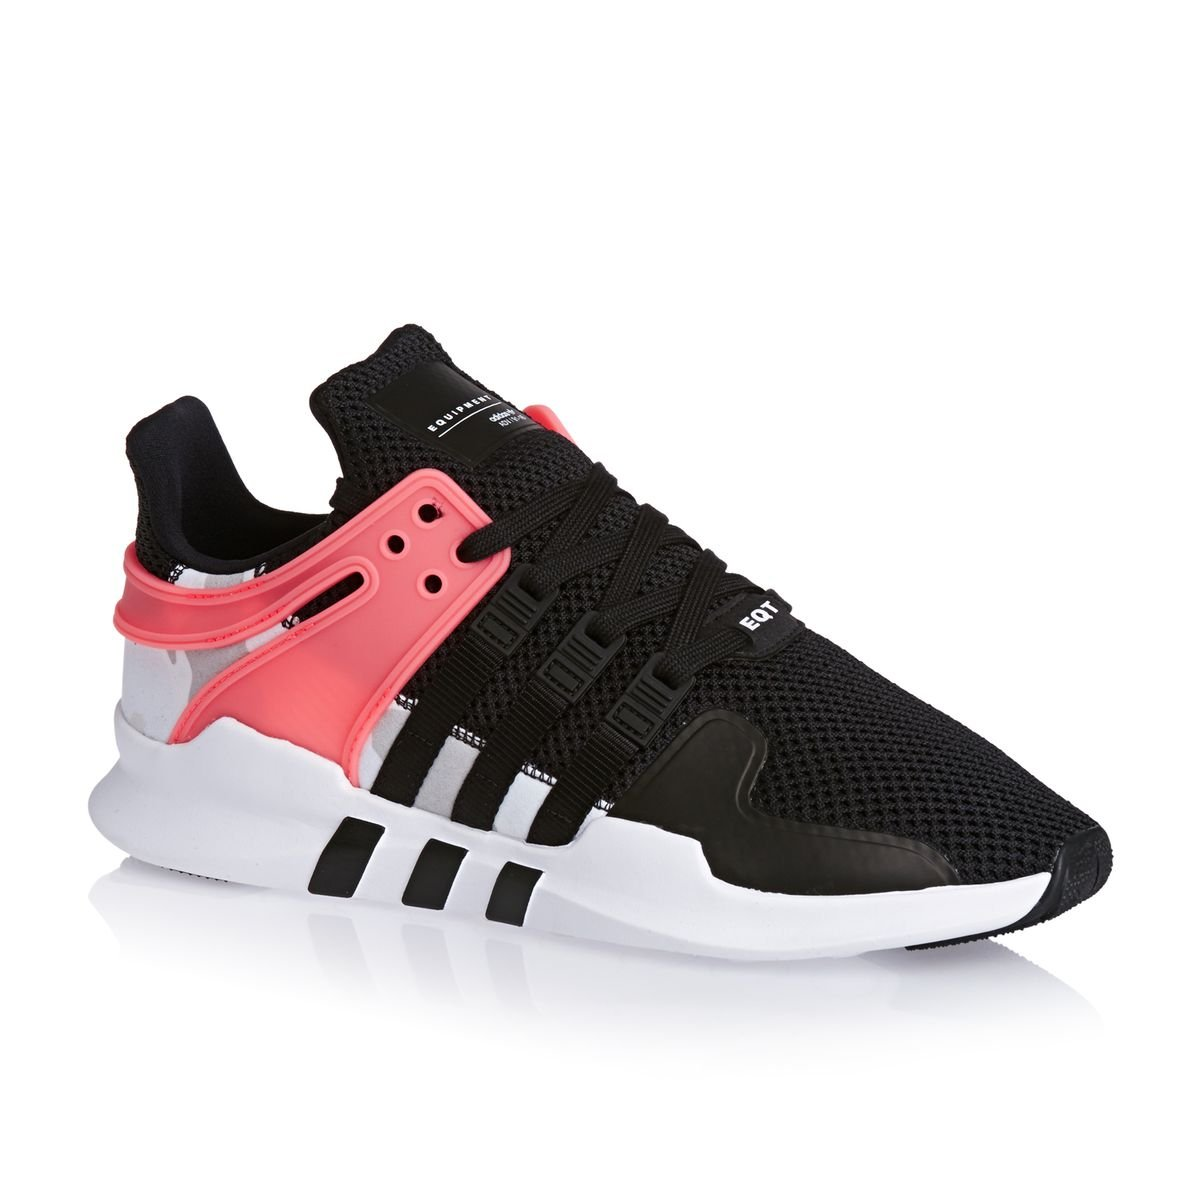 Adidas EQT Support ADV, Zapatillas para Hombre 5,5|core black-core black-turbo